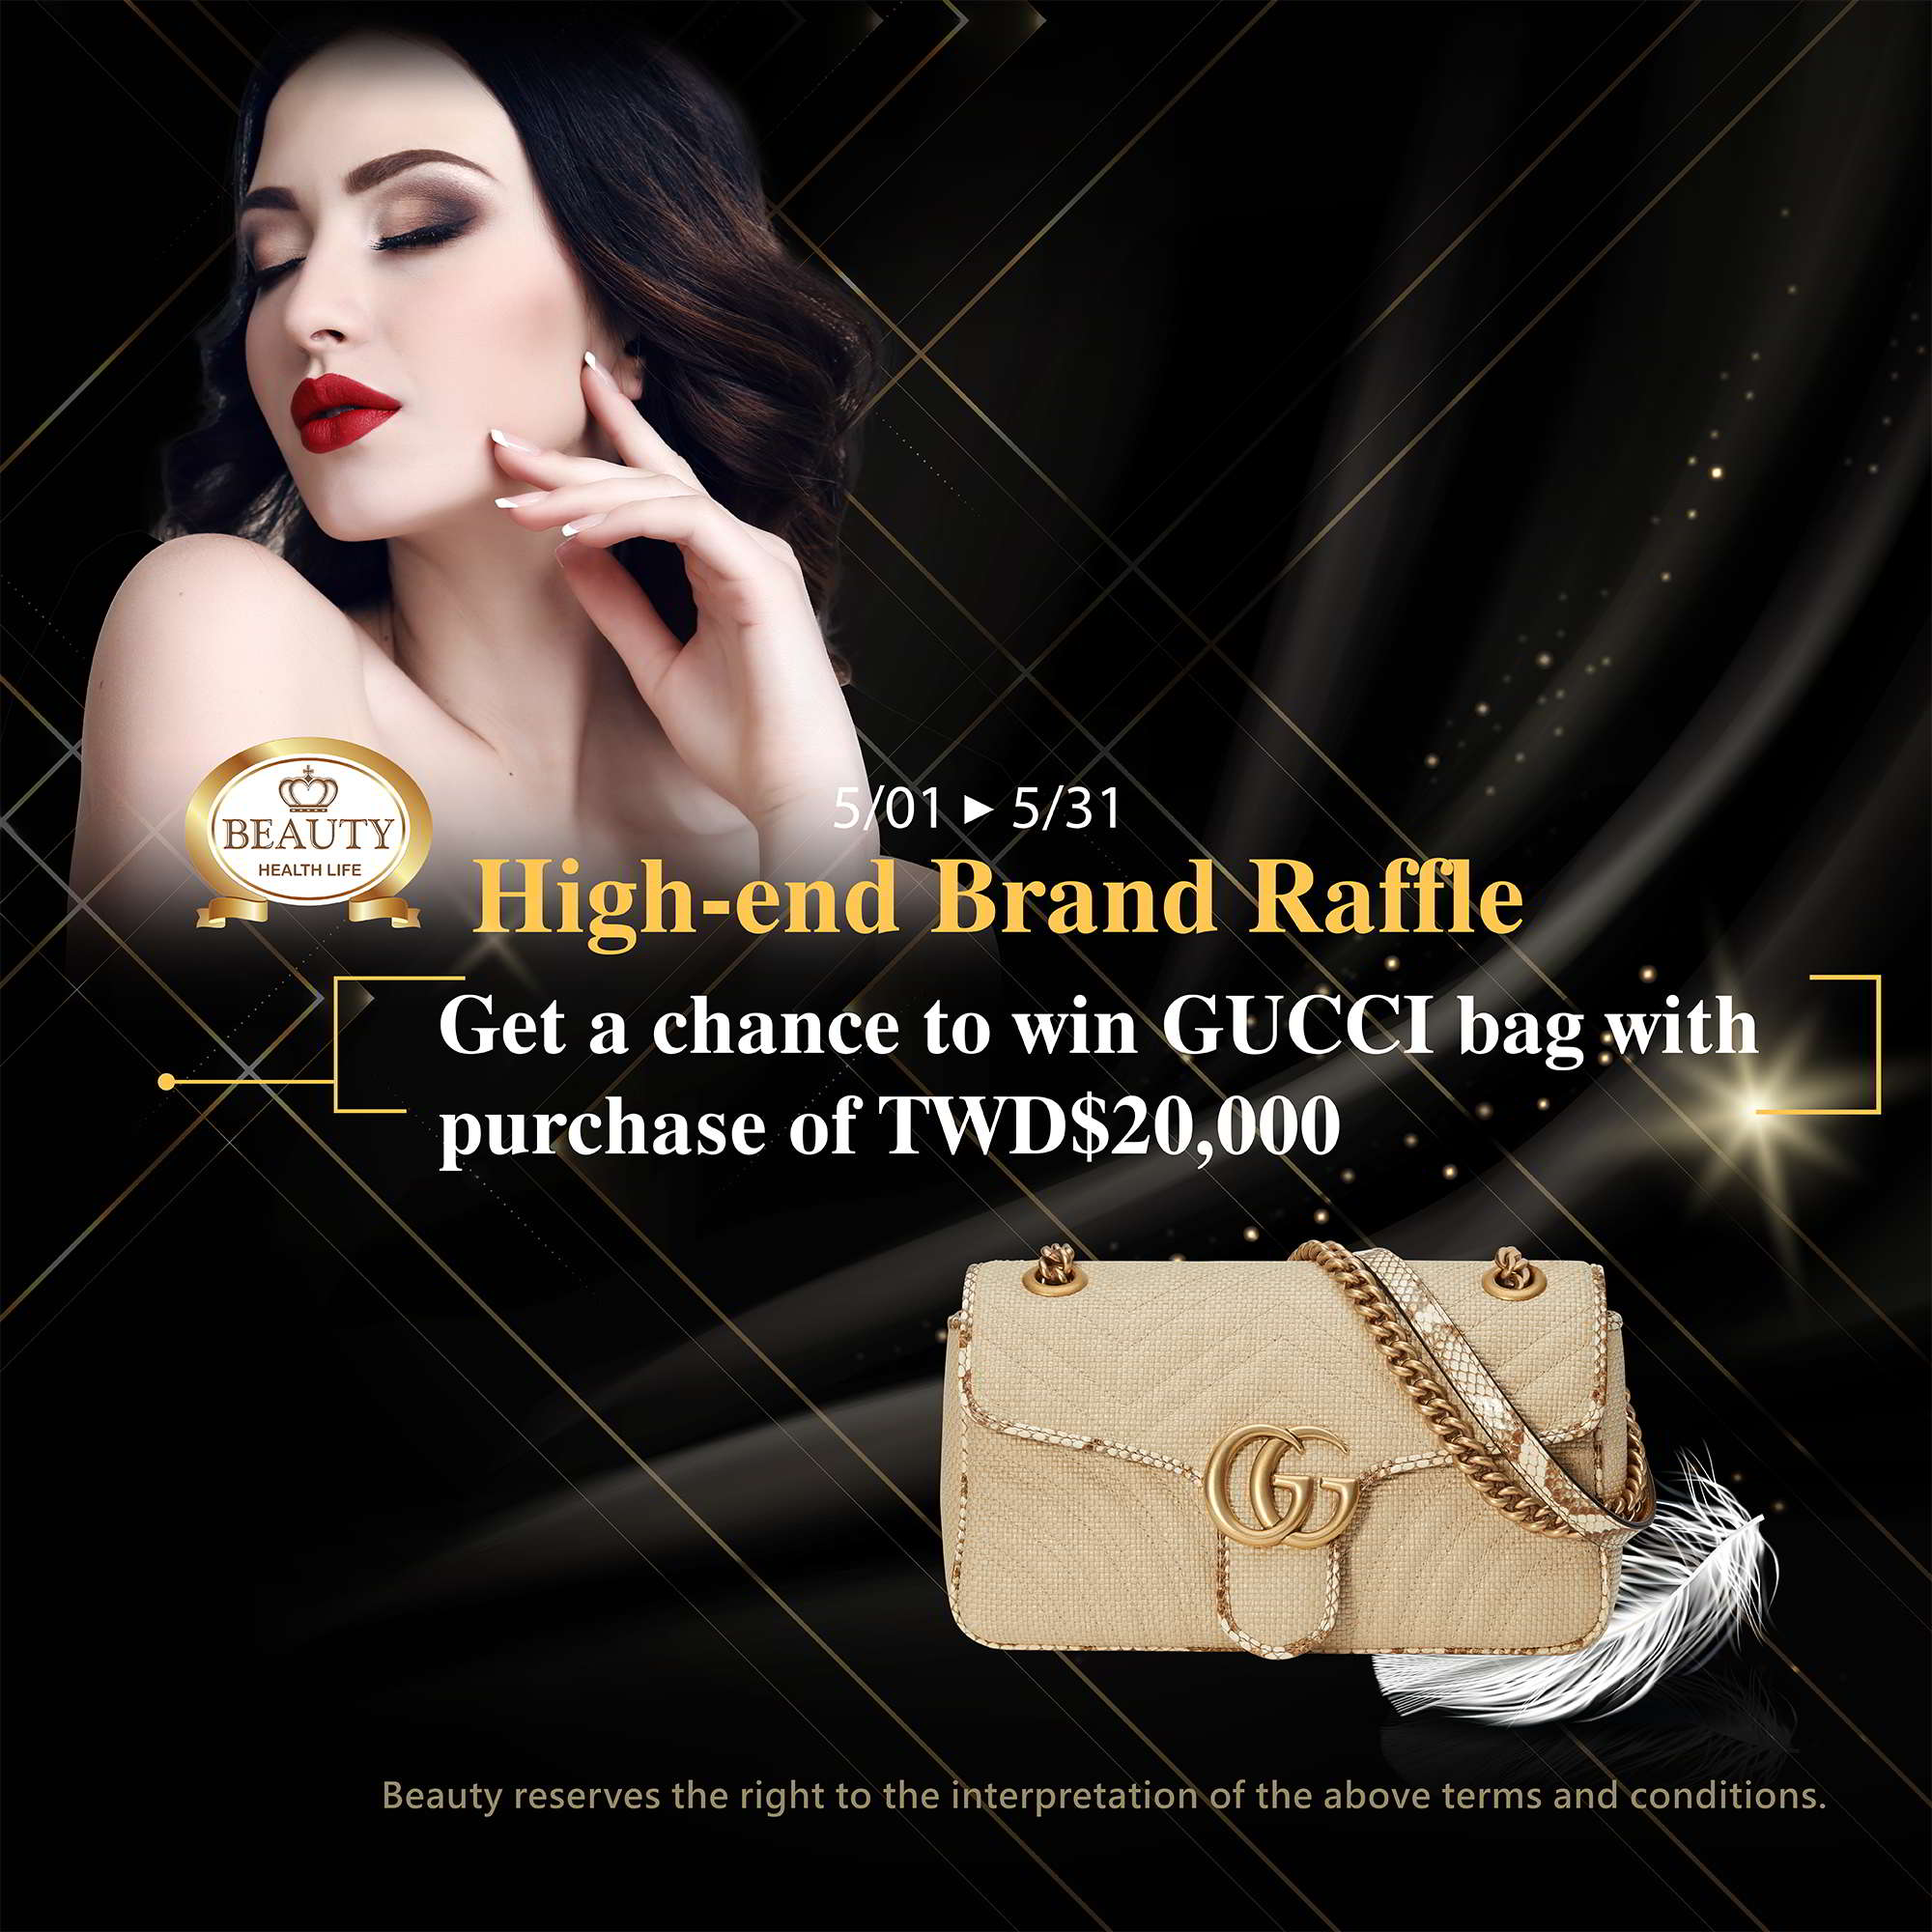 High-end Brand Raffle EDM.jpg